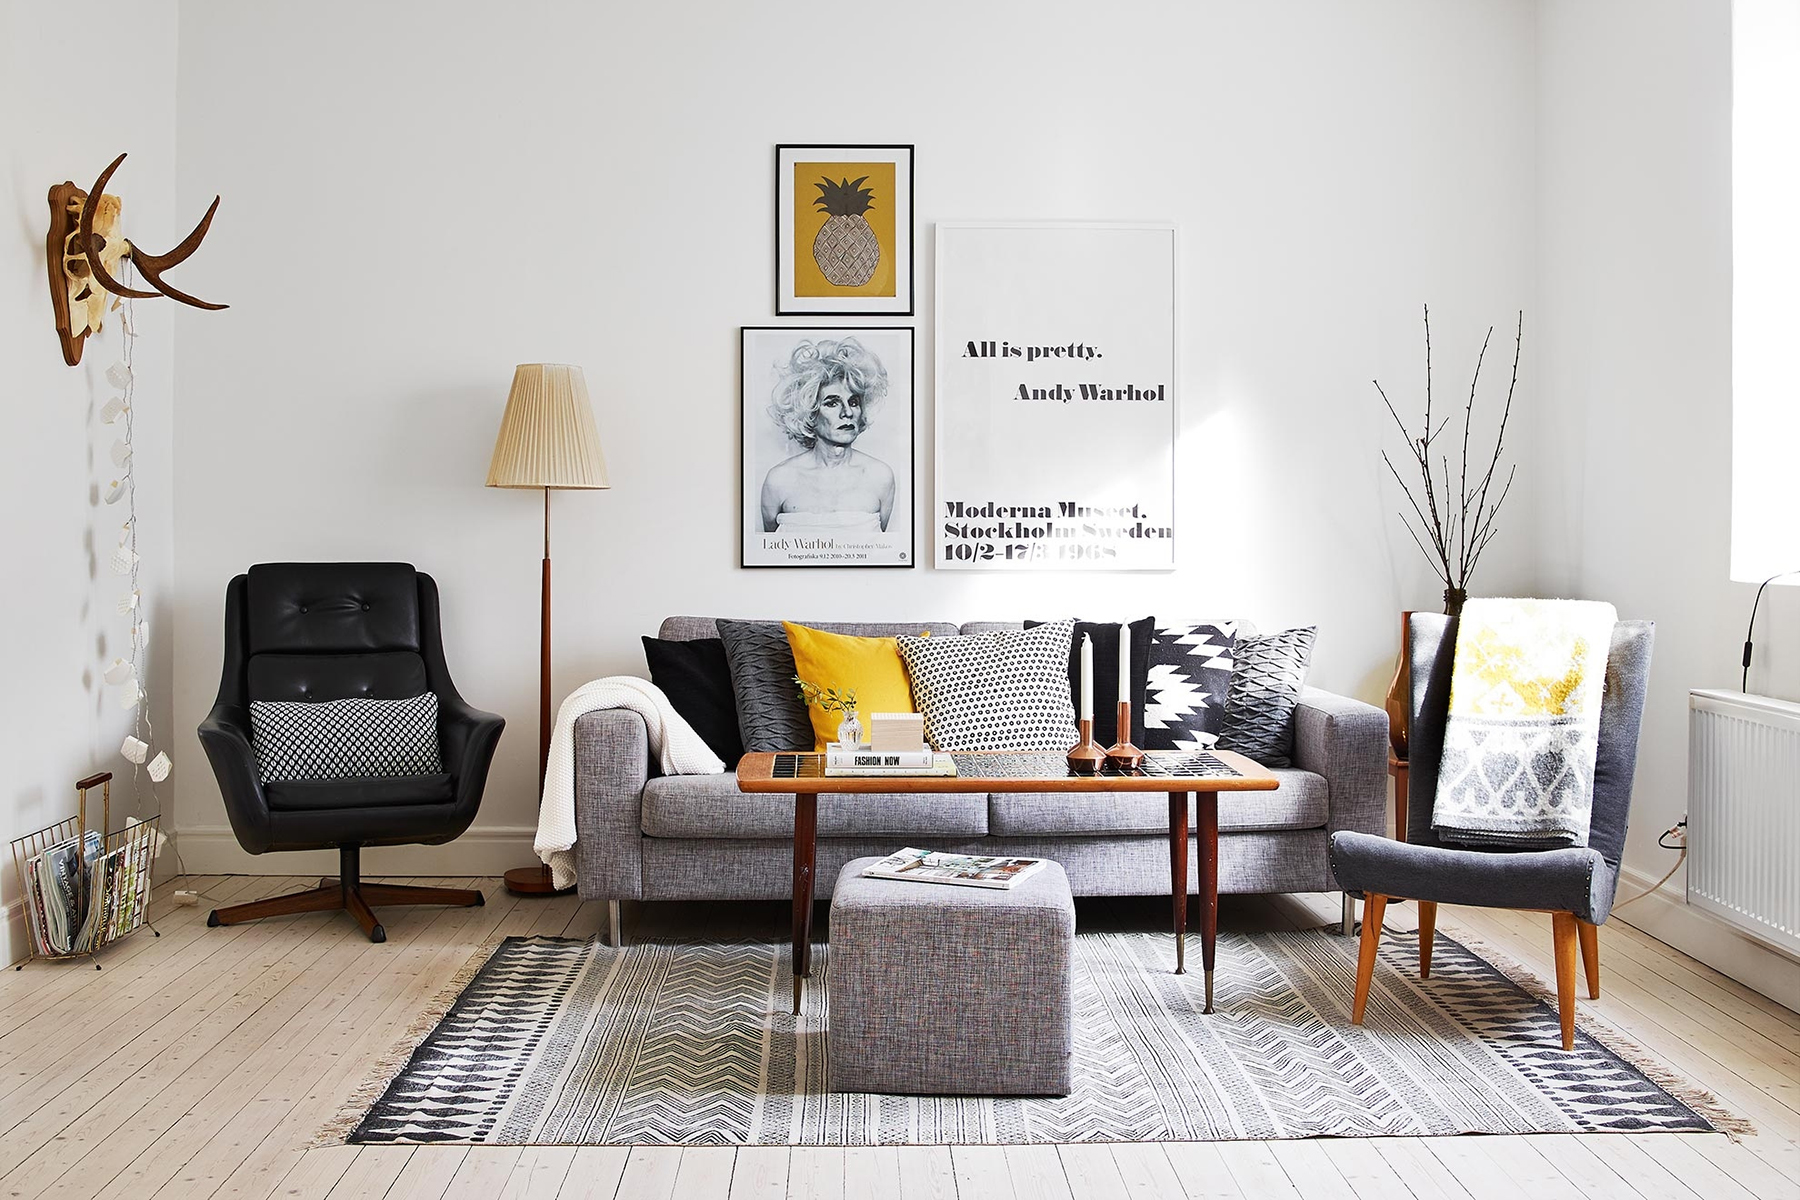 Scandinavian Style Living Room Top 10 Tips For Adding Scandinavian Style To Your Home